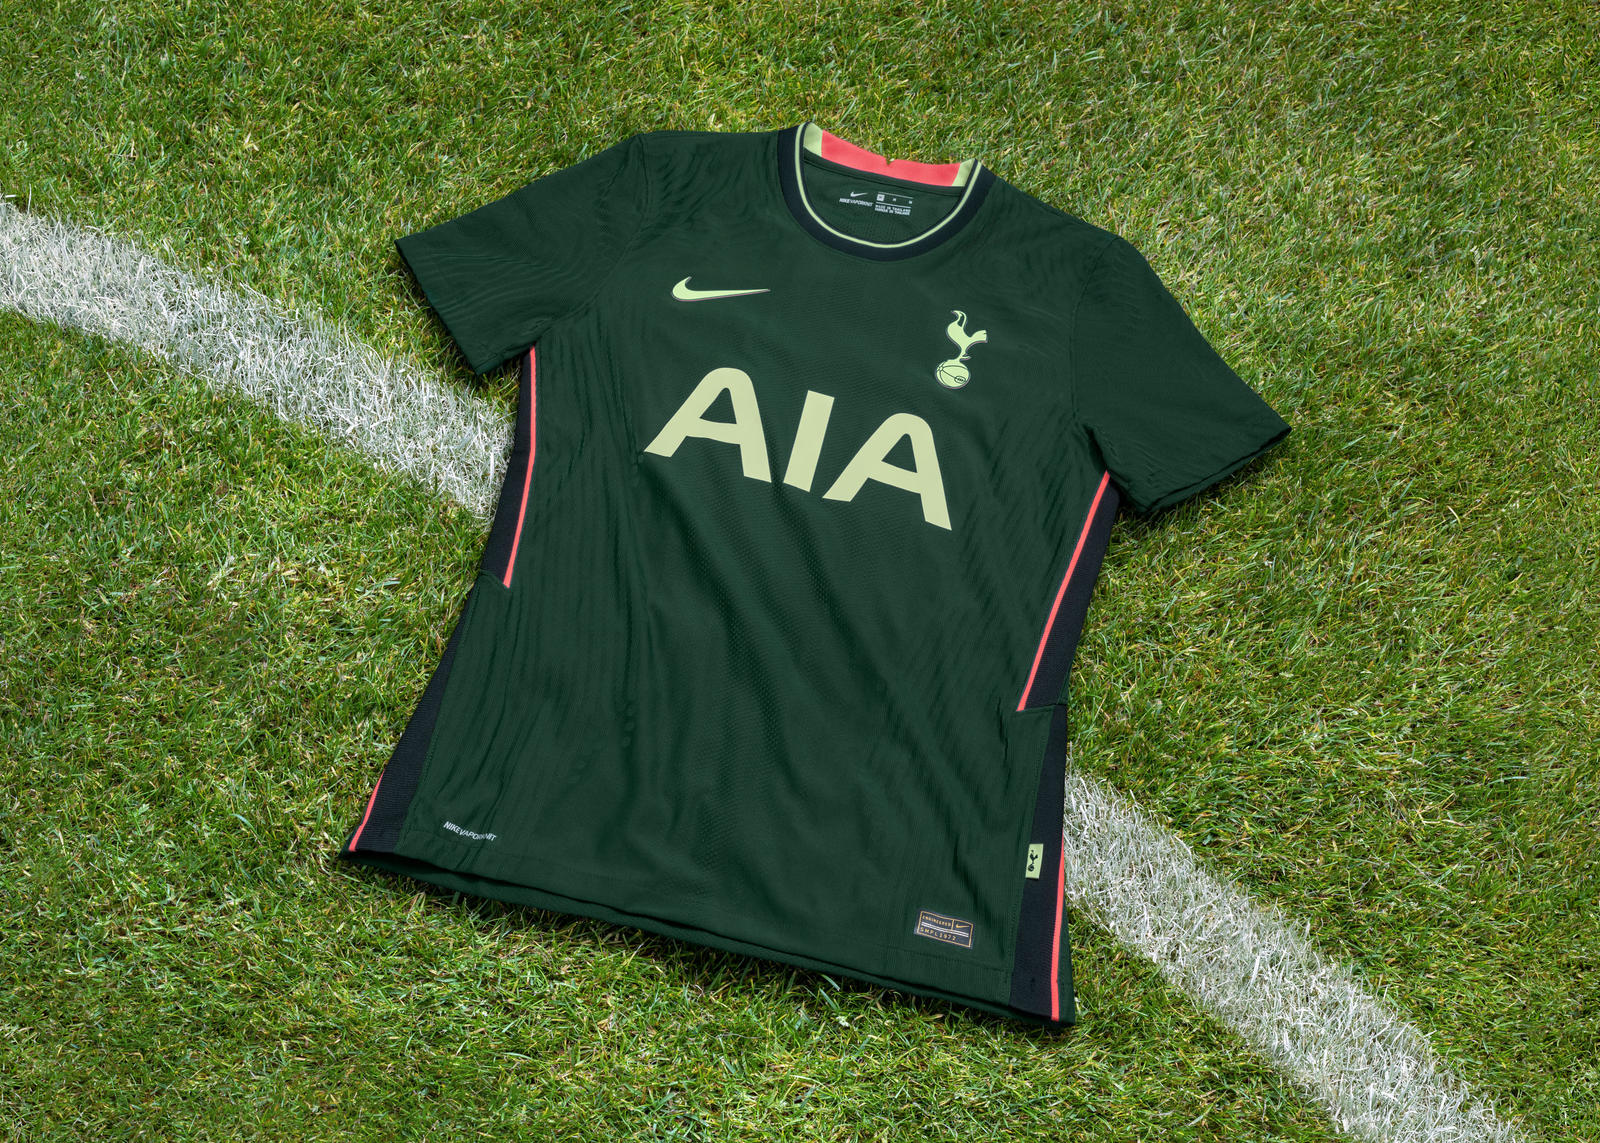 Tottenham Hotspur 2020-21 Home and Away Kits 0